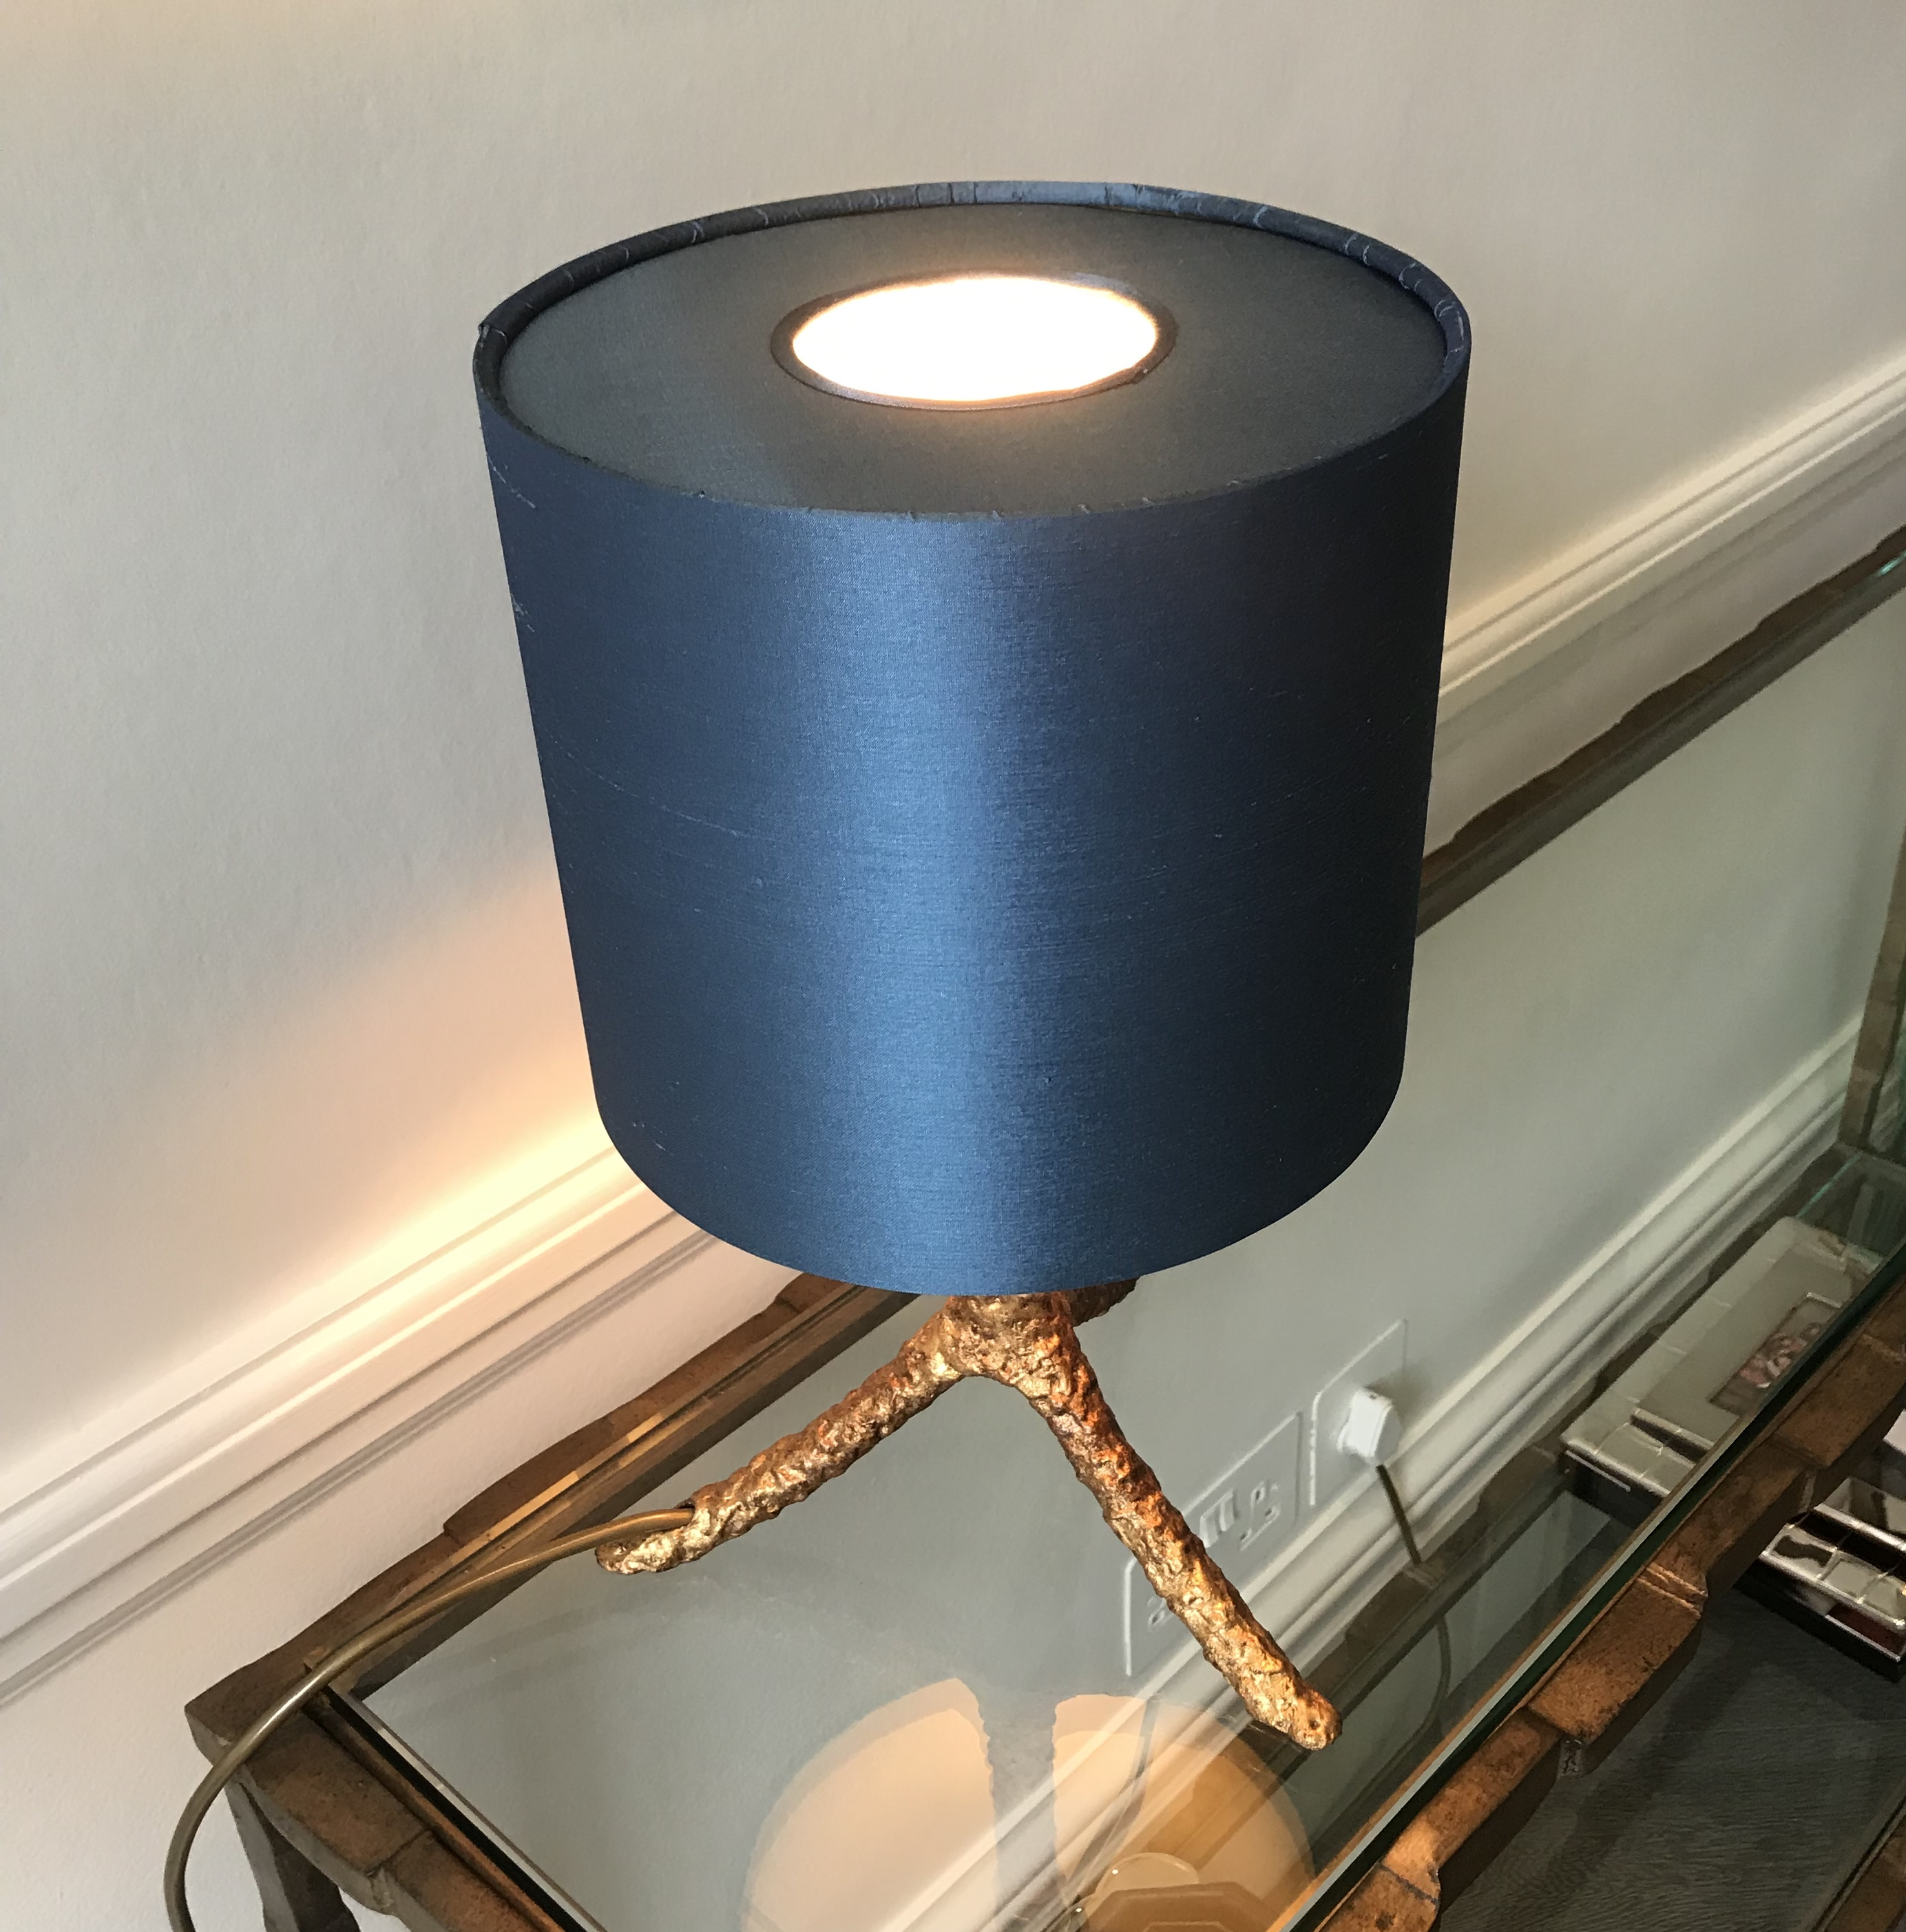 Bespoke lampshade with a diffuser